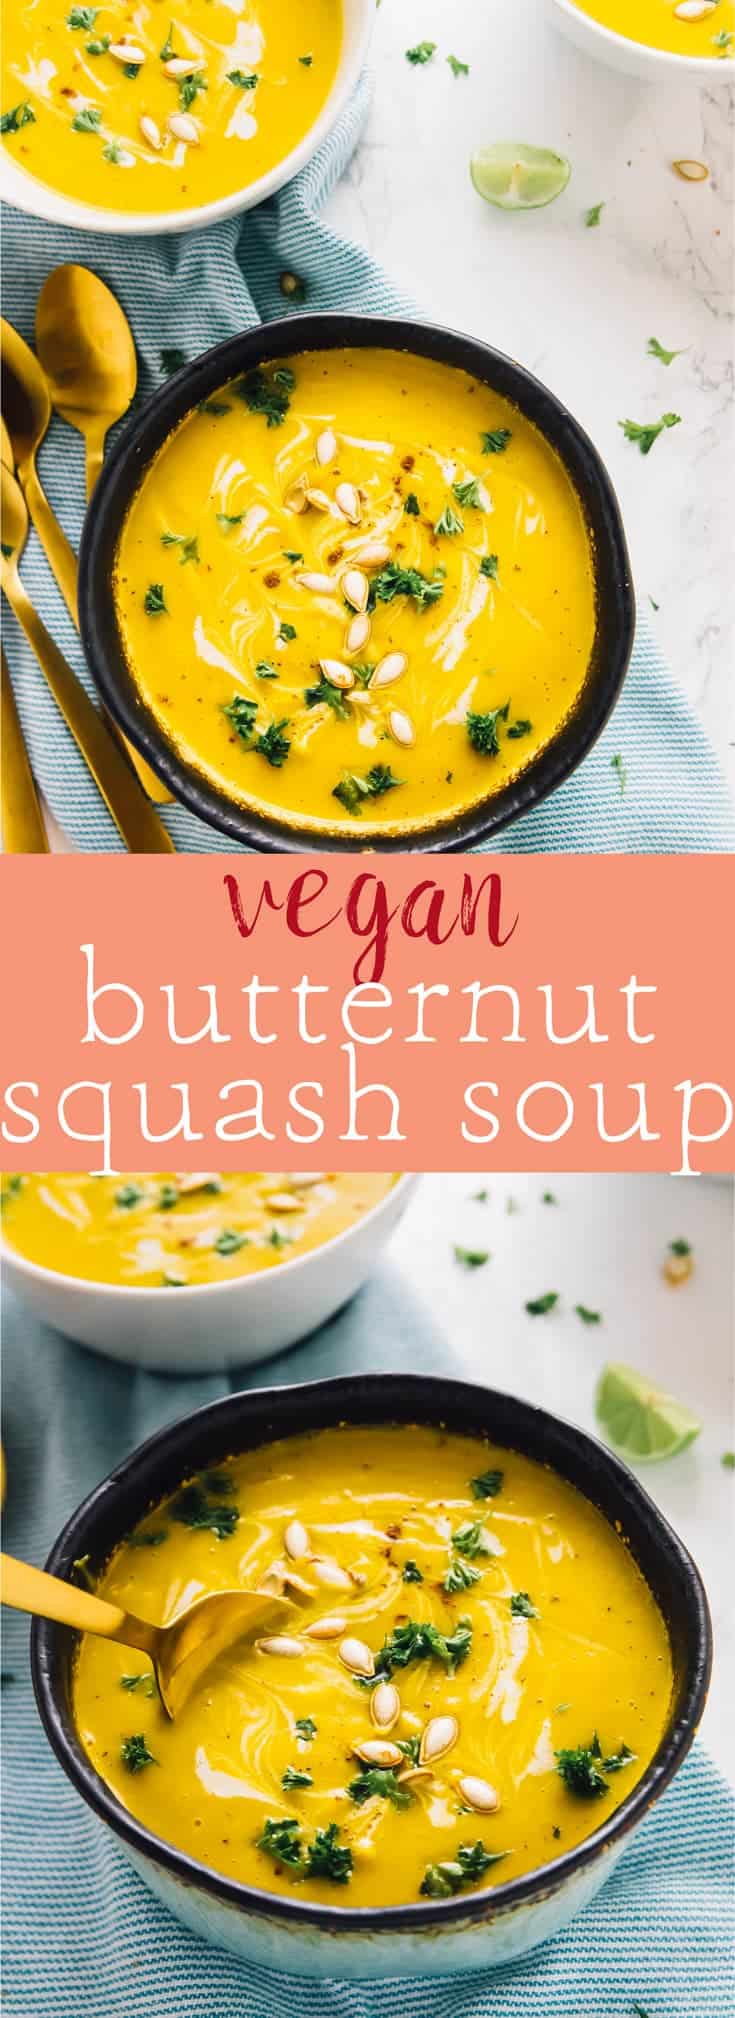 This Vegan Butternut Squash Soup is made in just one pot, blended to creamy perfection and done in 30 minutes. It's vegan, gluten free, and made with all natural ingredients! via https://jessicainthekitchen.com